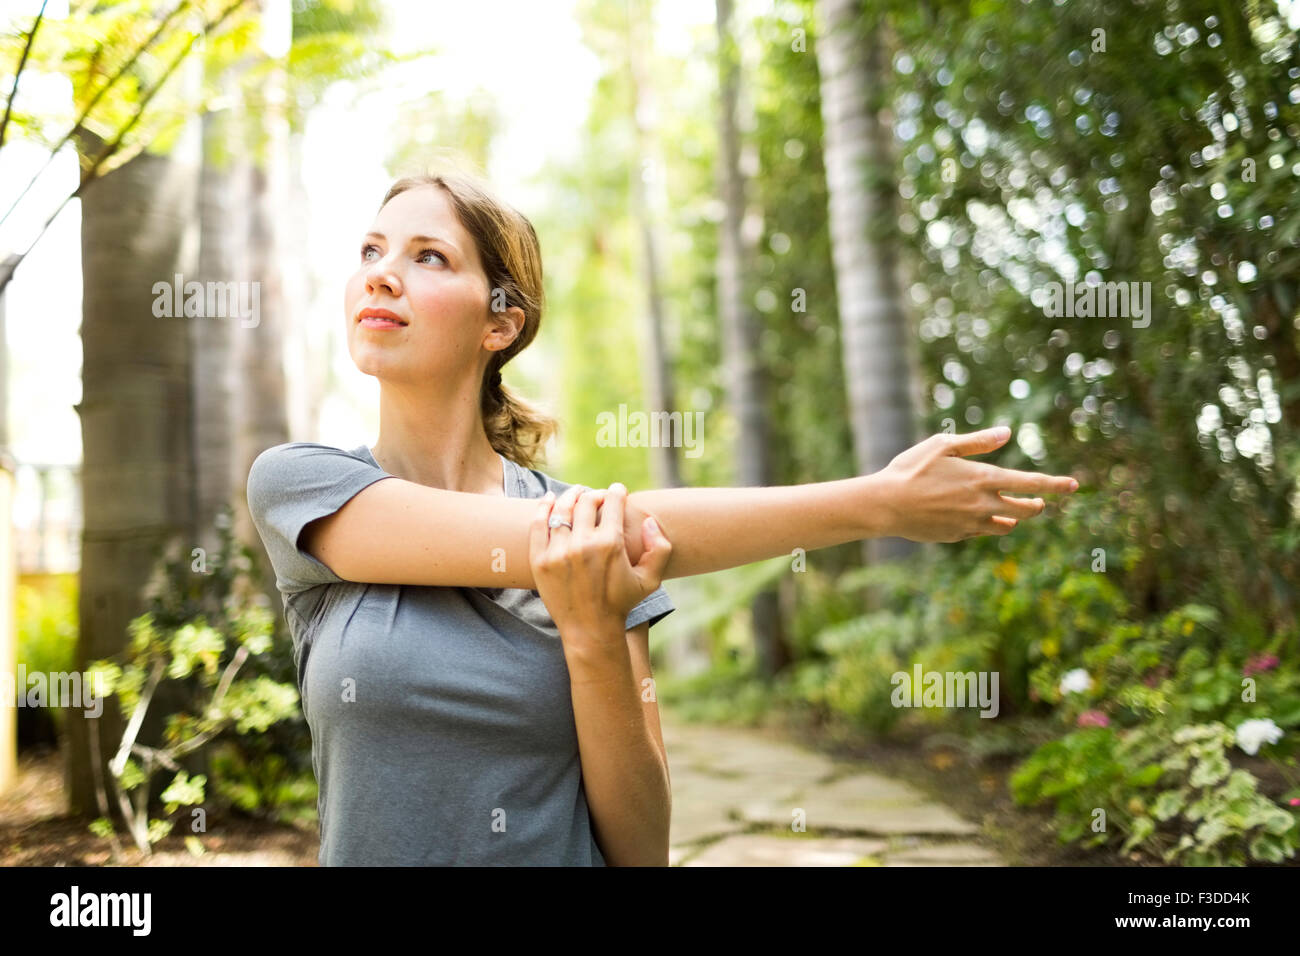 Woman practicing yoga - Stock Image